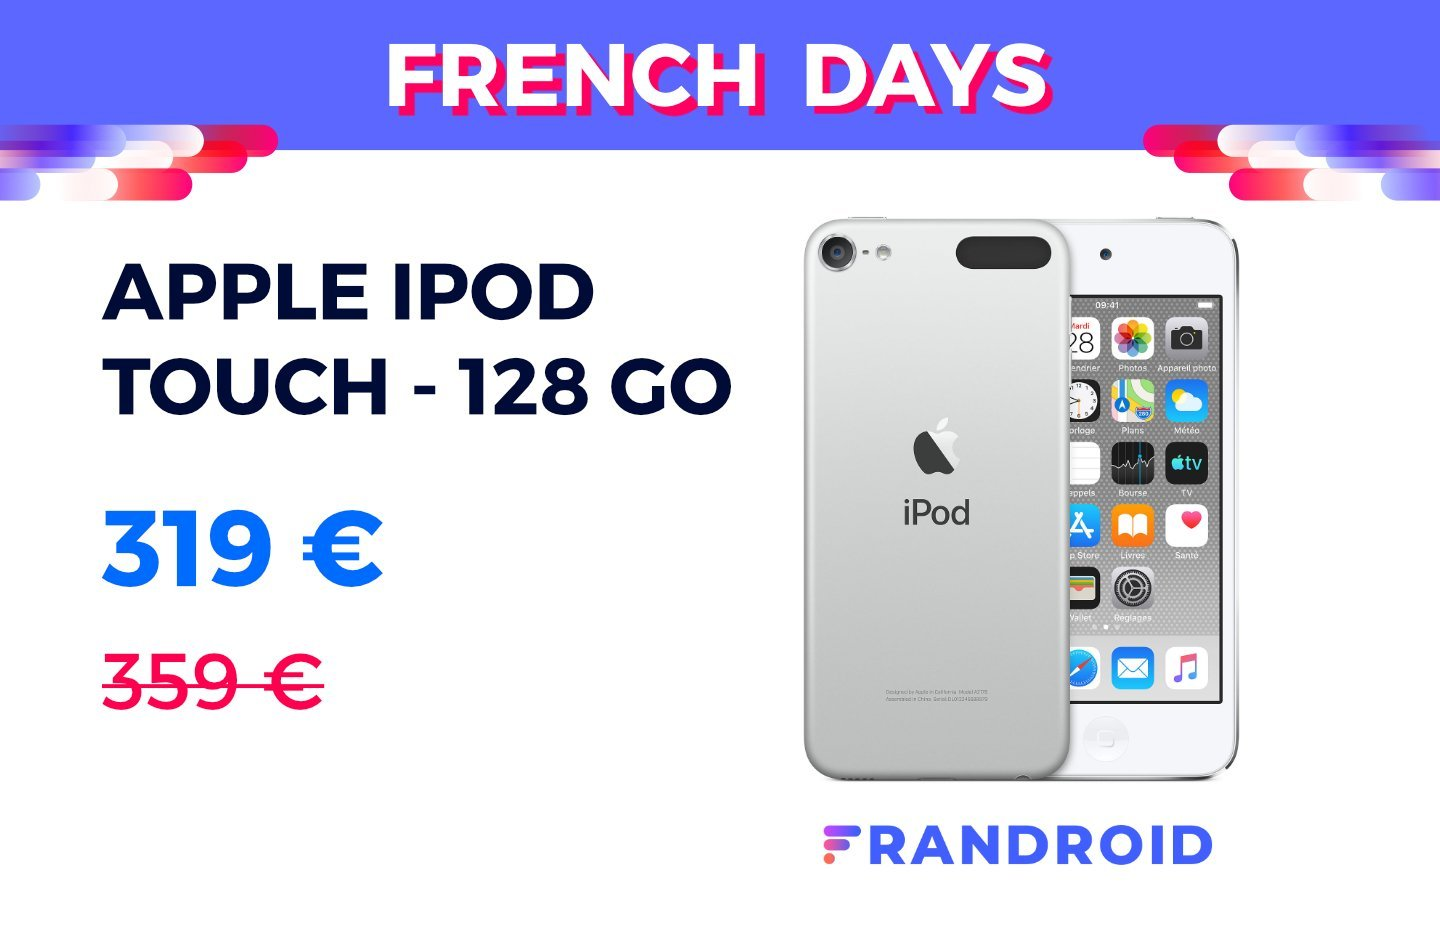 La version 128 Go de l'Apple iPod touch baisse son prix pour les French Days